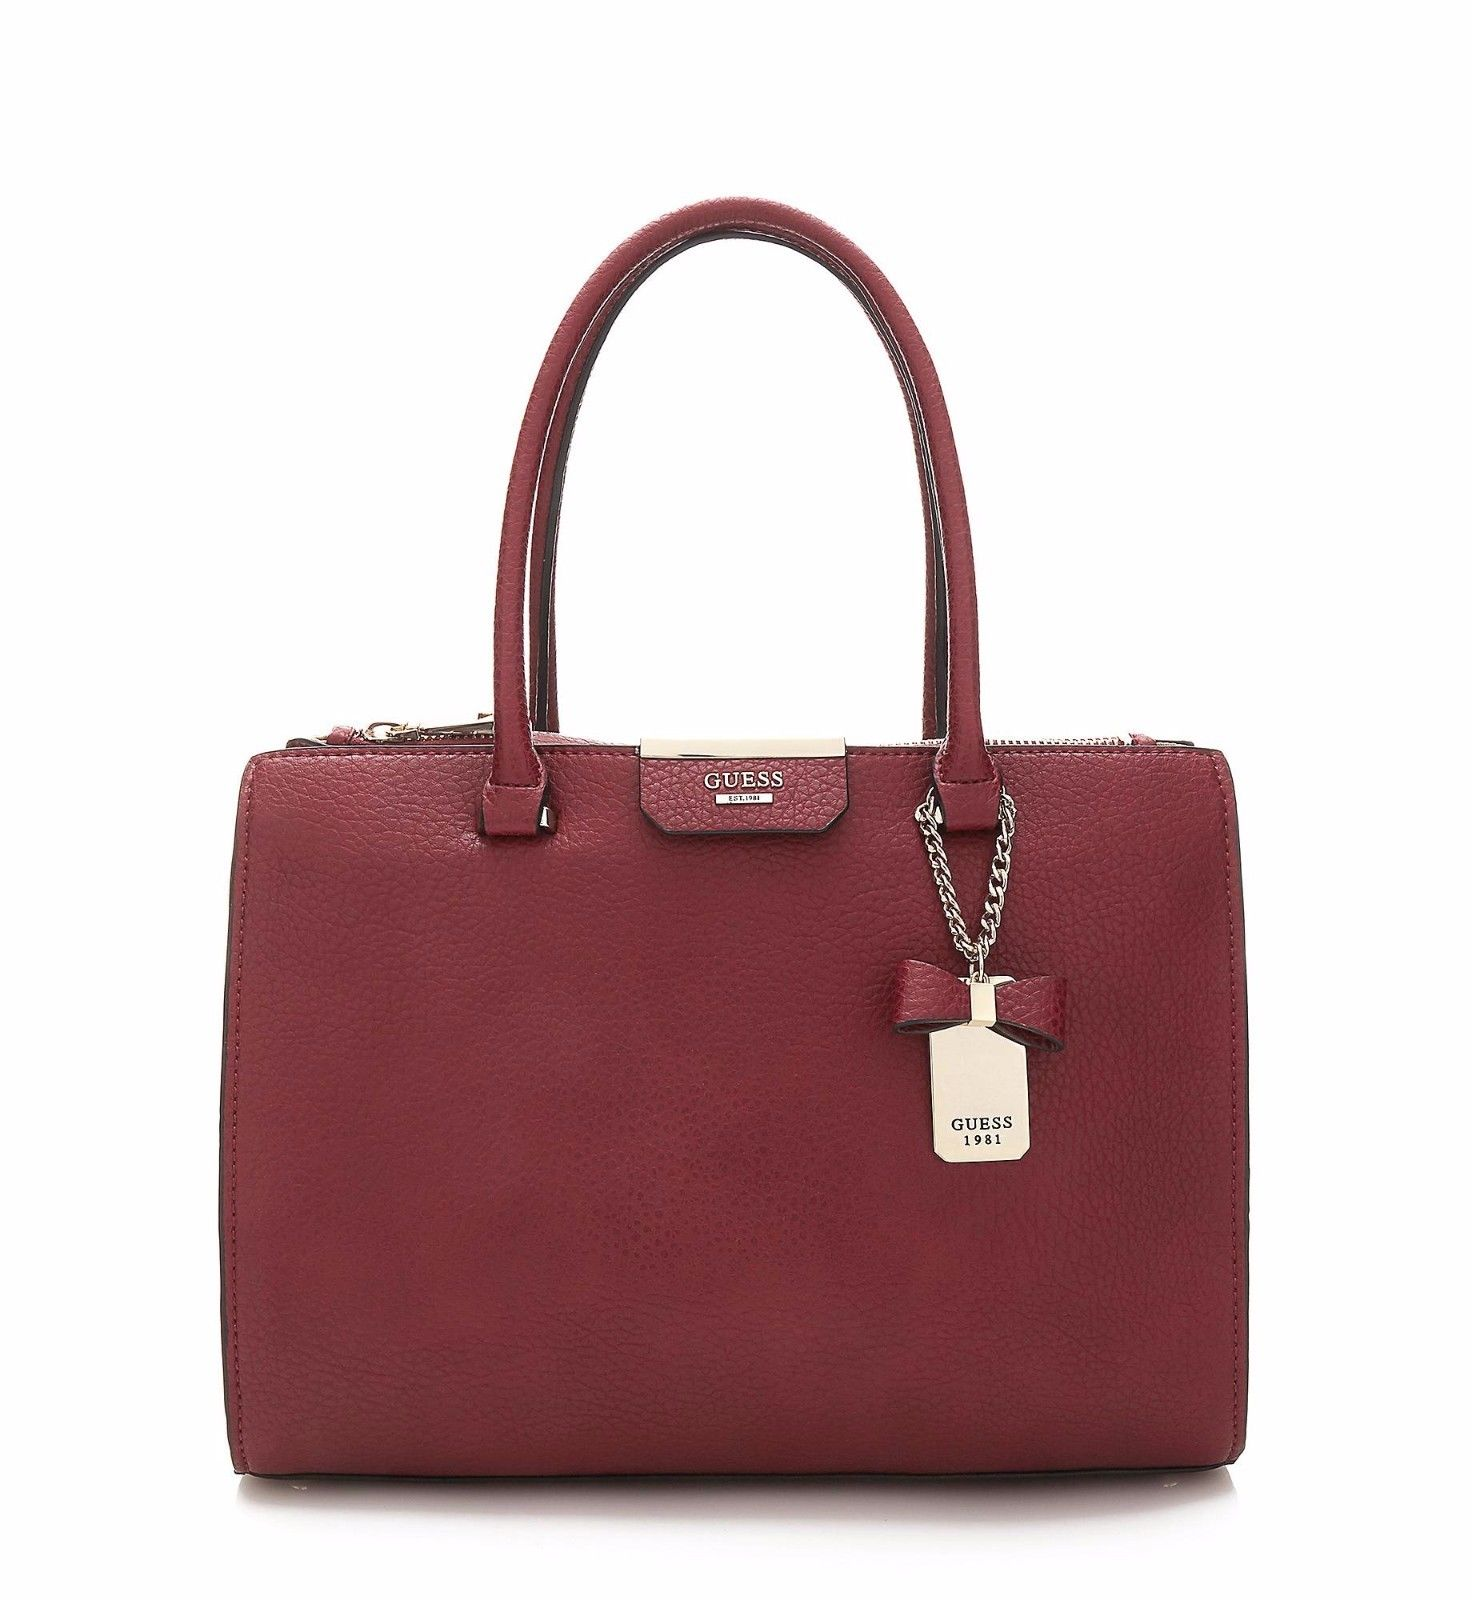 BORSA BORSE DONNA GUESS ORIGINAL HWPB6683230 ECO PELLE RYANN BAG A/I 2017/18 NEW